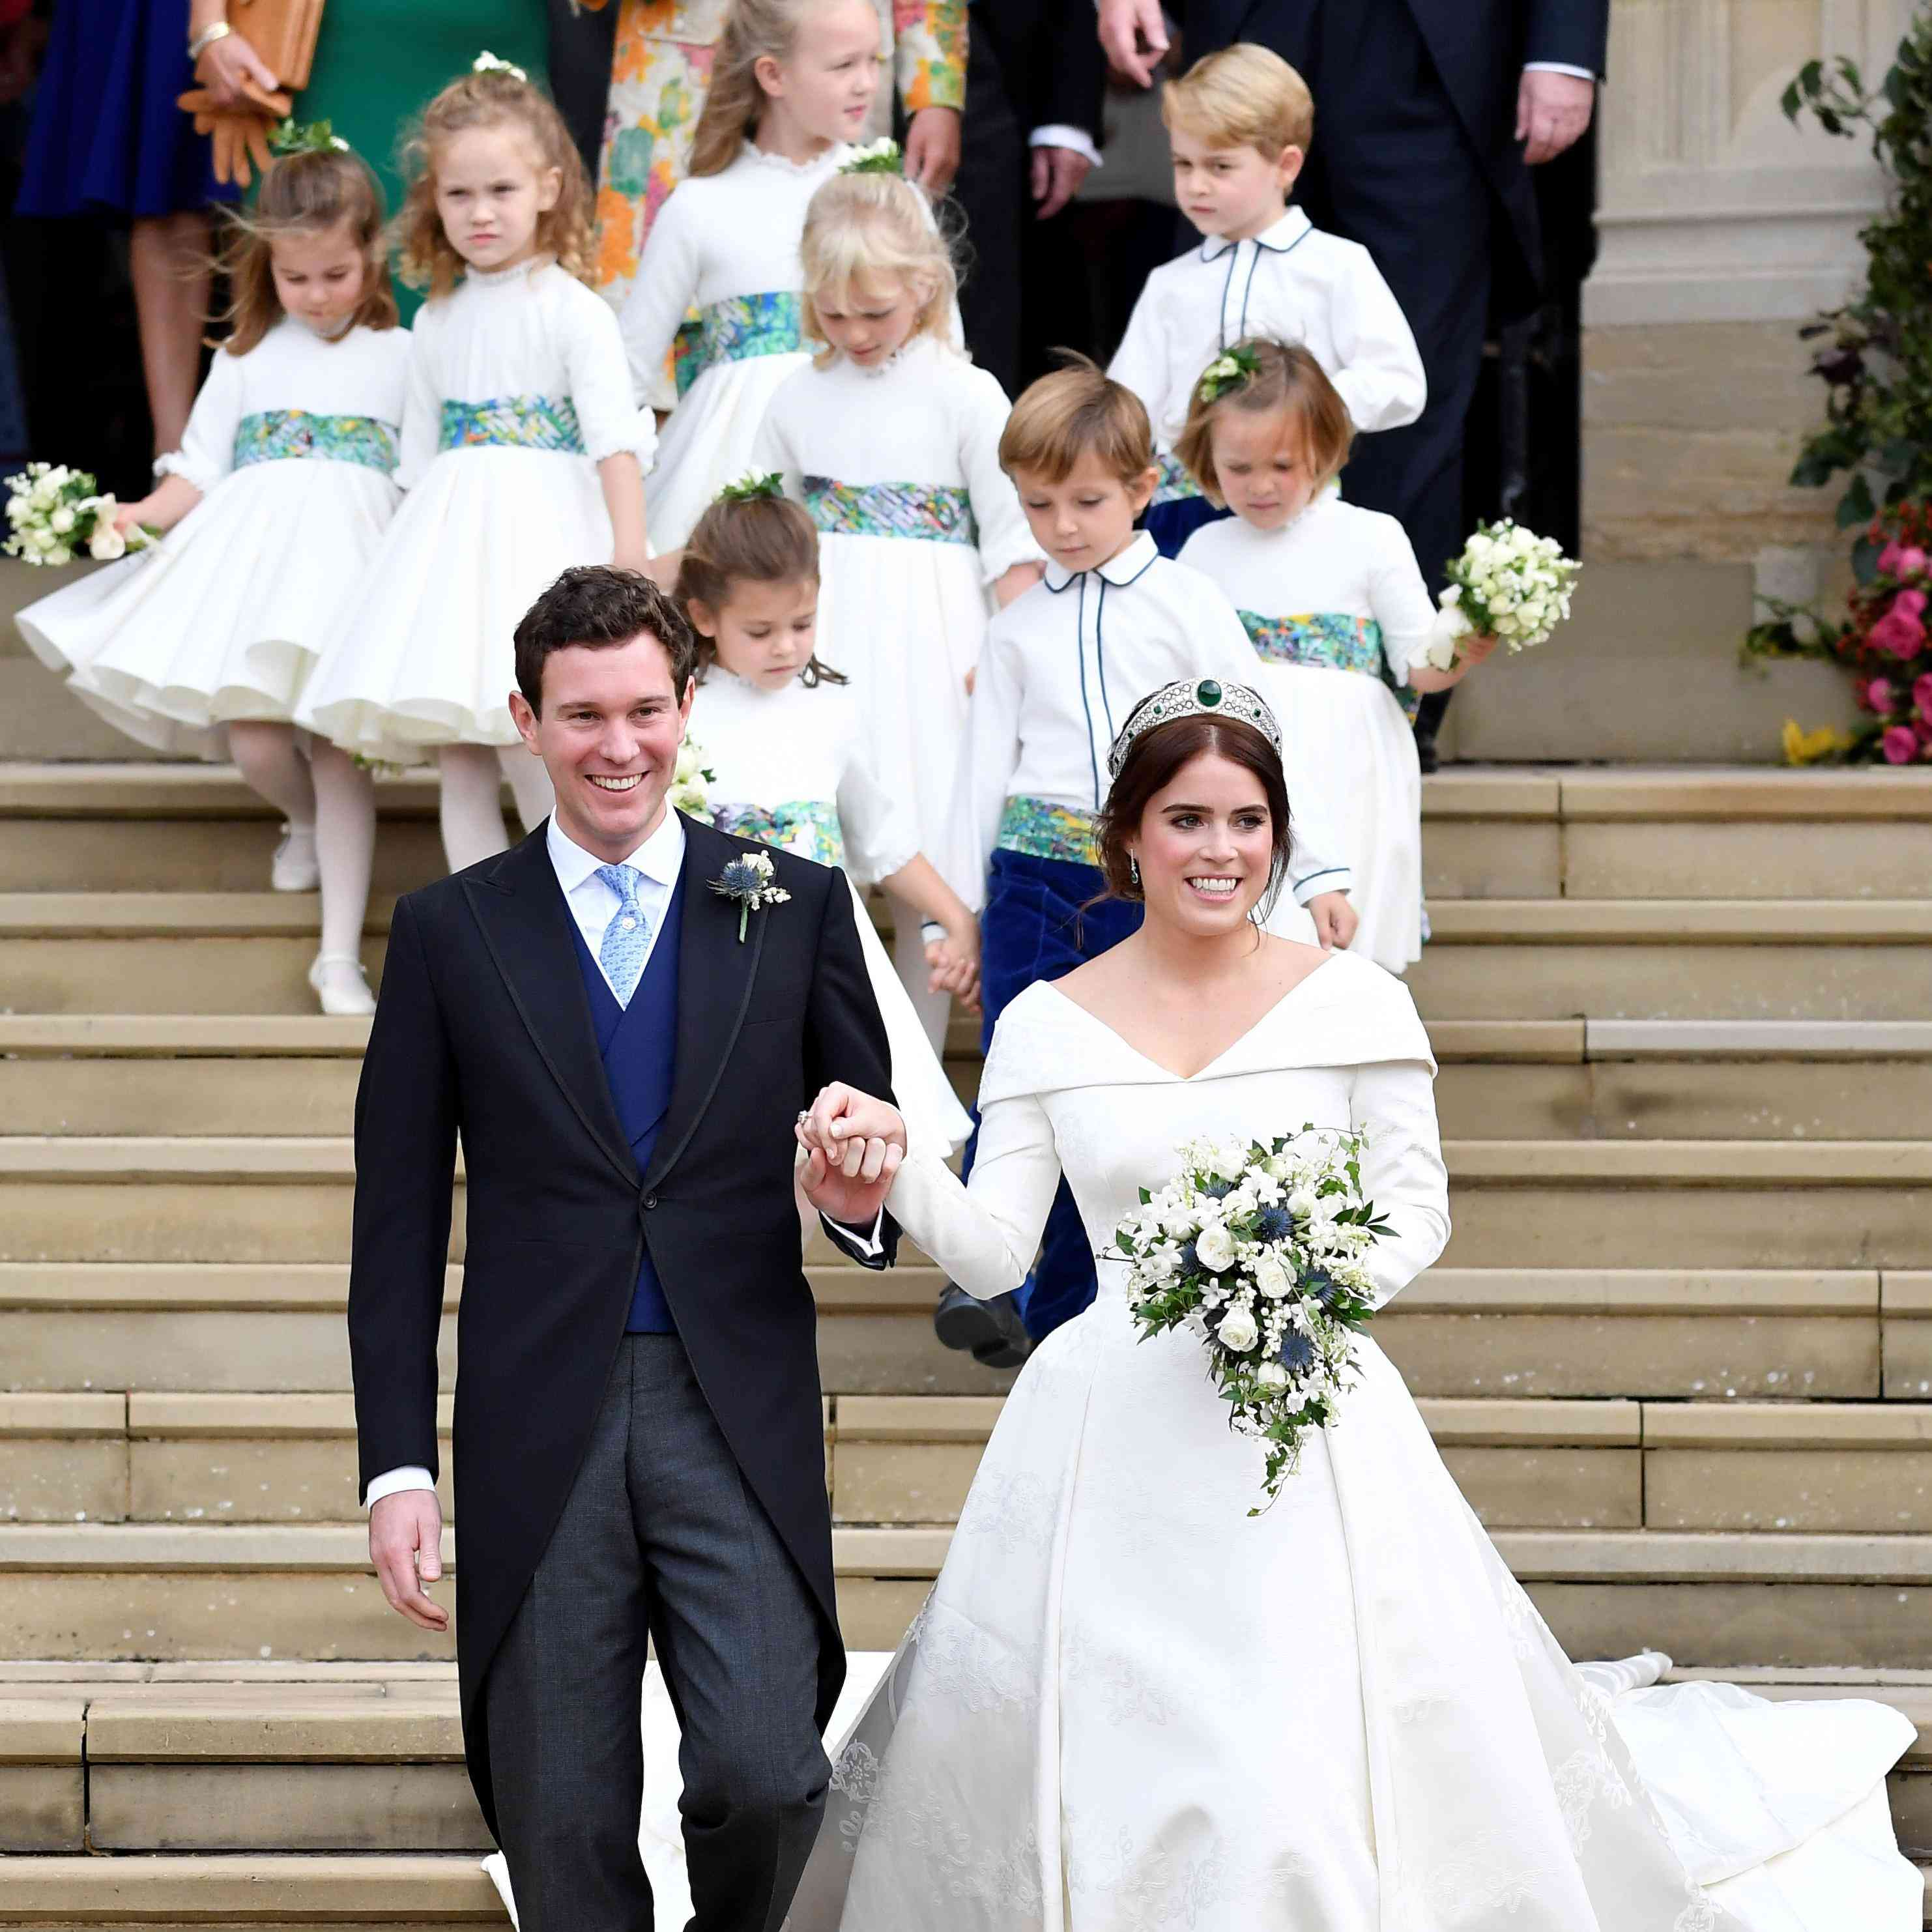 Official Royal Wedding Pictures.Princess Eugenie And Jack Brooksbank S Official Royal Wedding